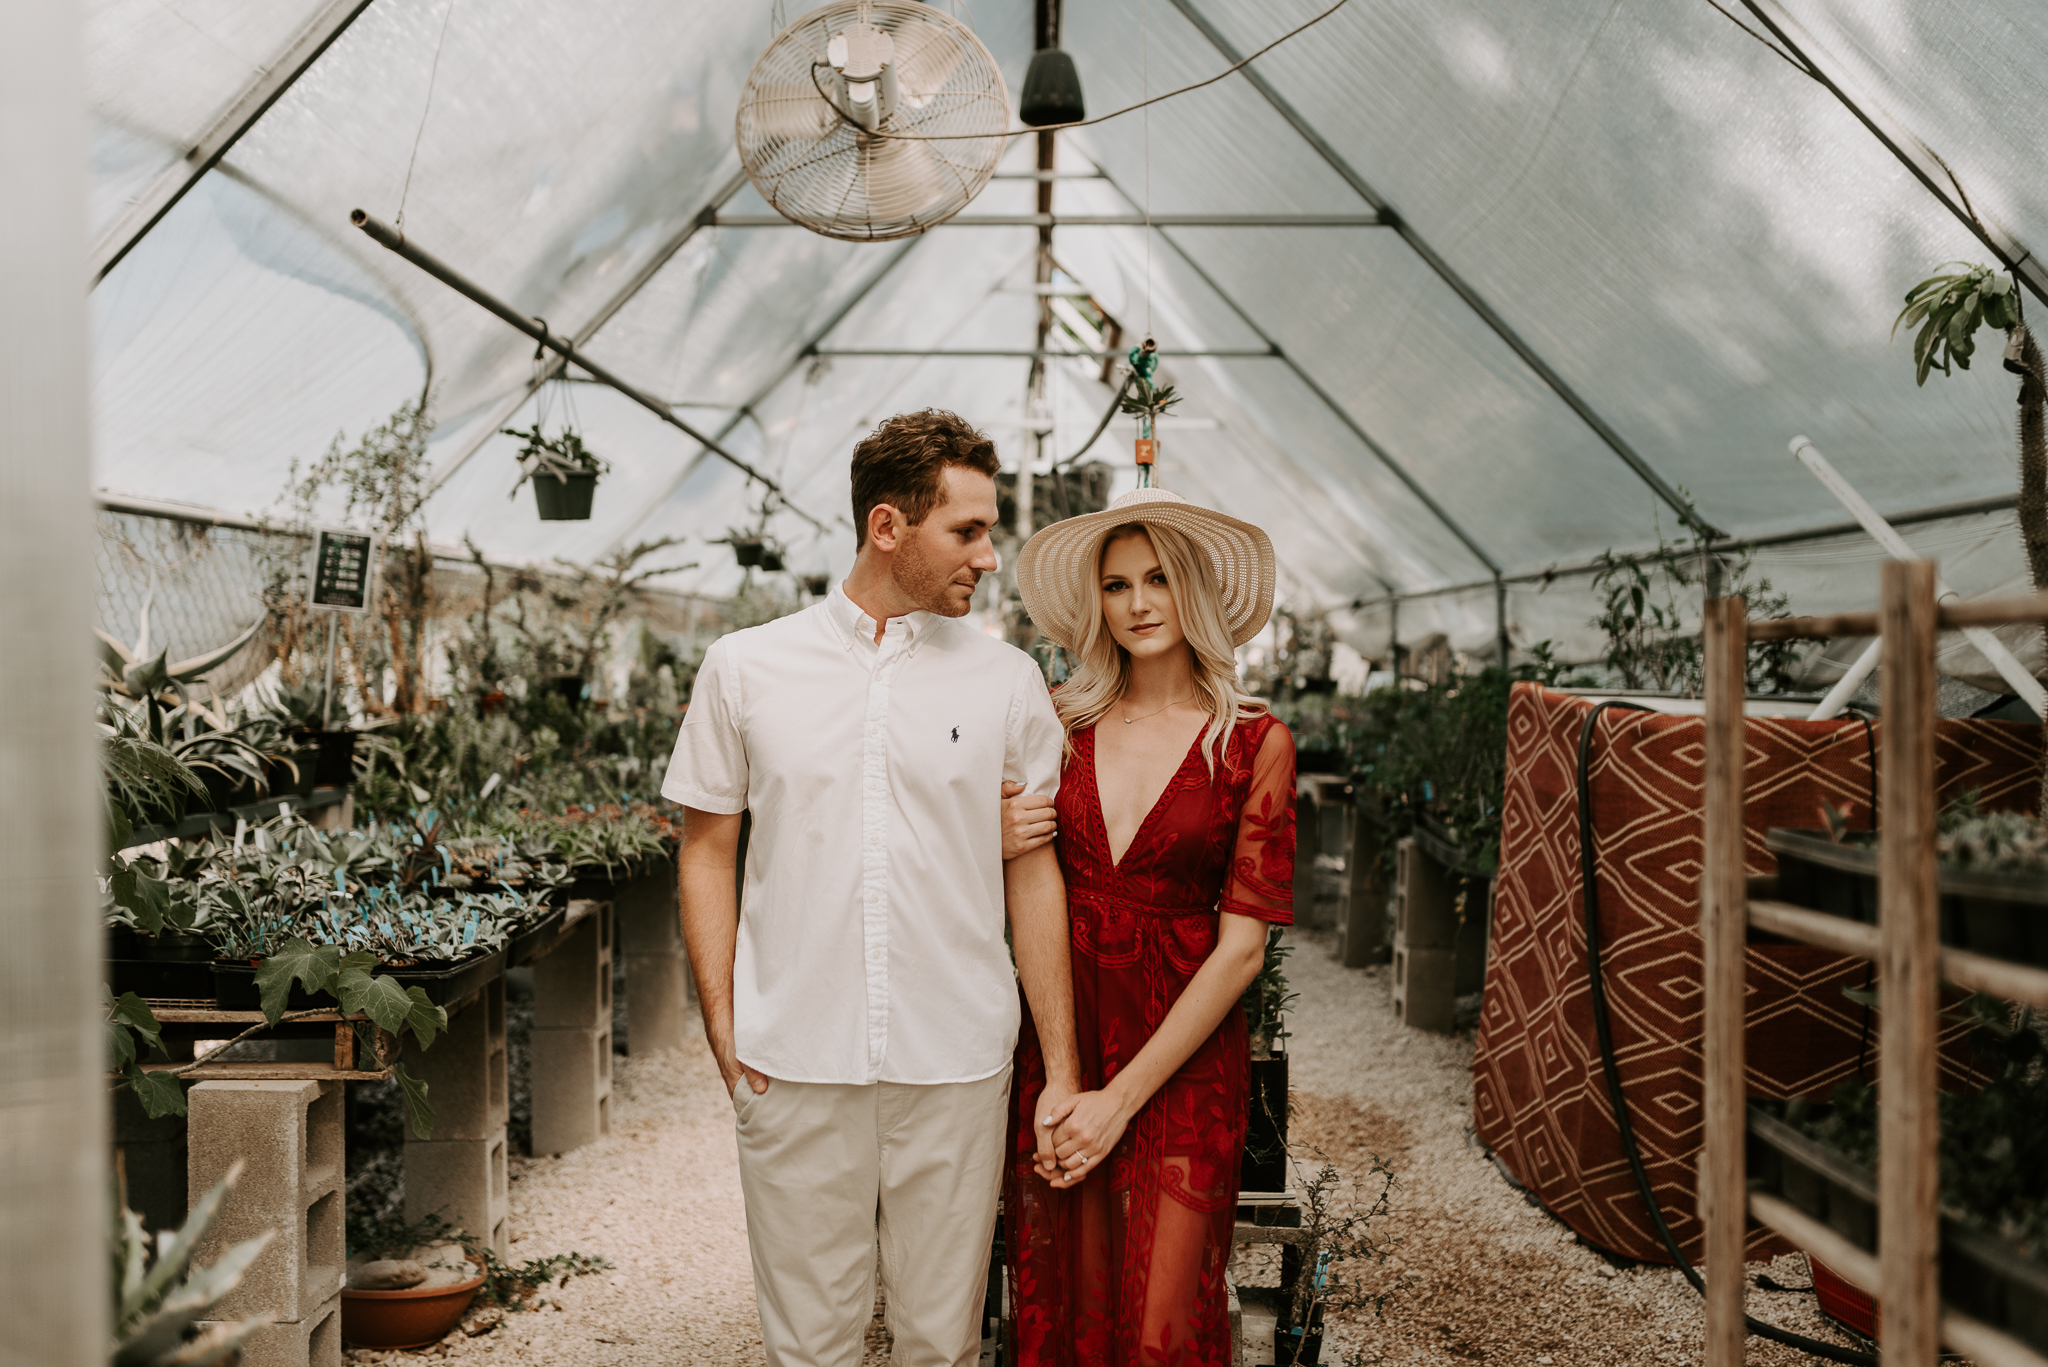 kristen giles photography | texas wedding photographer - austin plant shop engagement session-3-blog.jpg